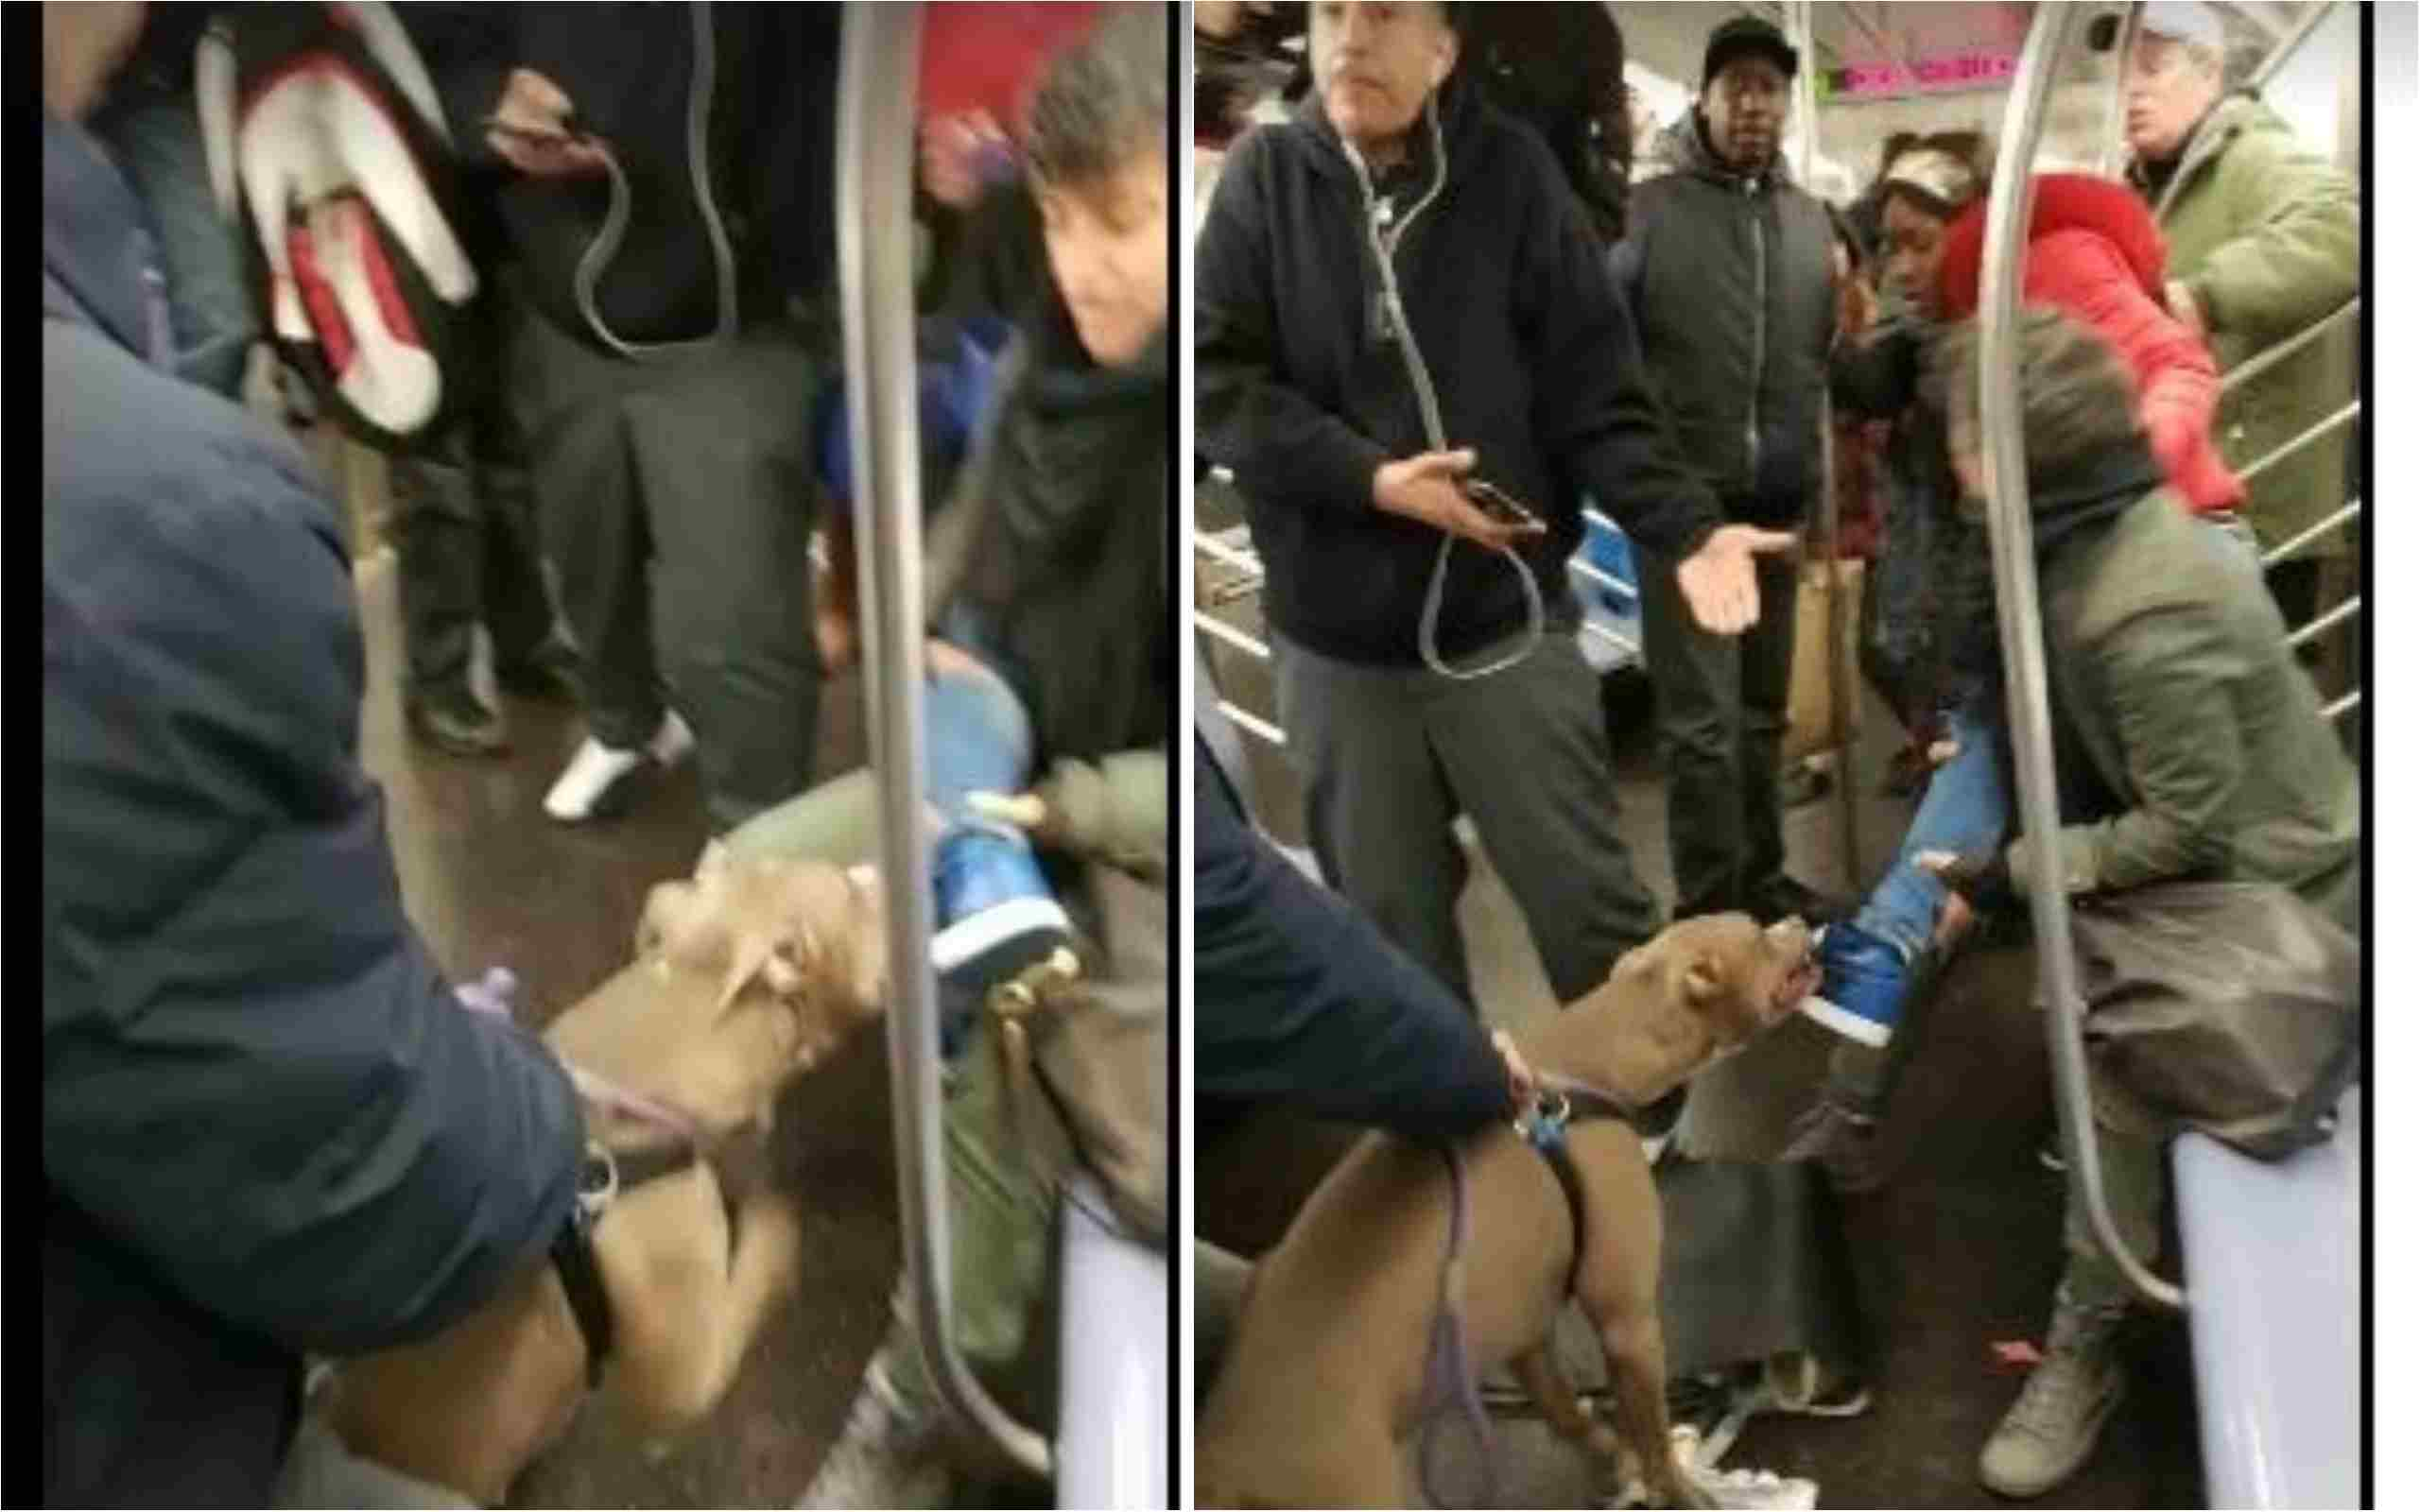 BIZARRE! This video of pit bull biting a woman and not letting go is going viral